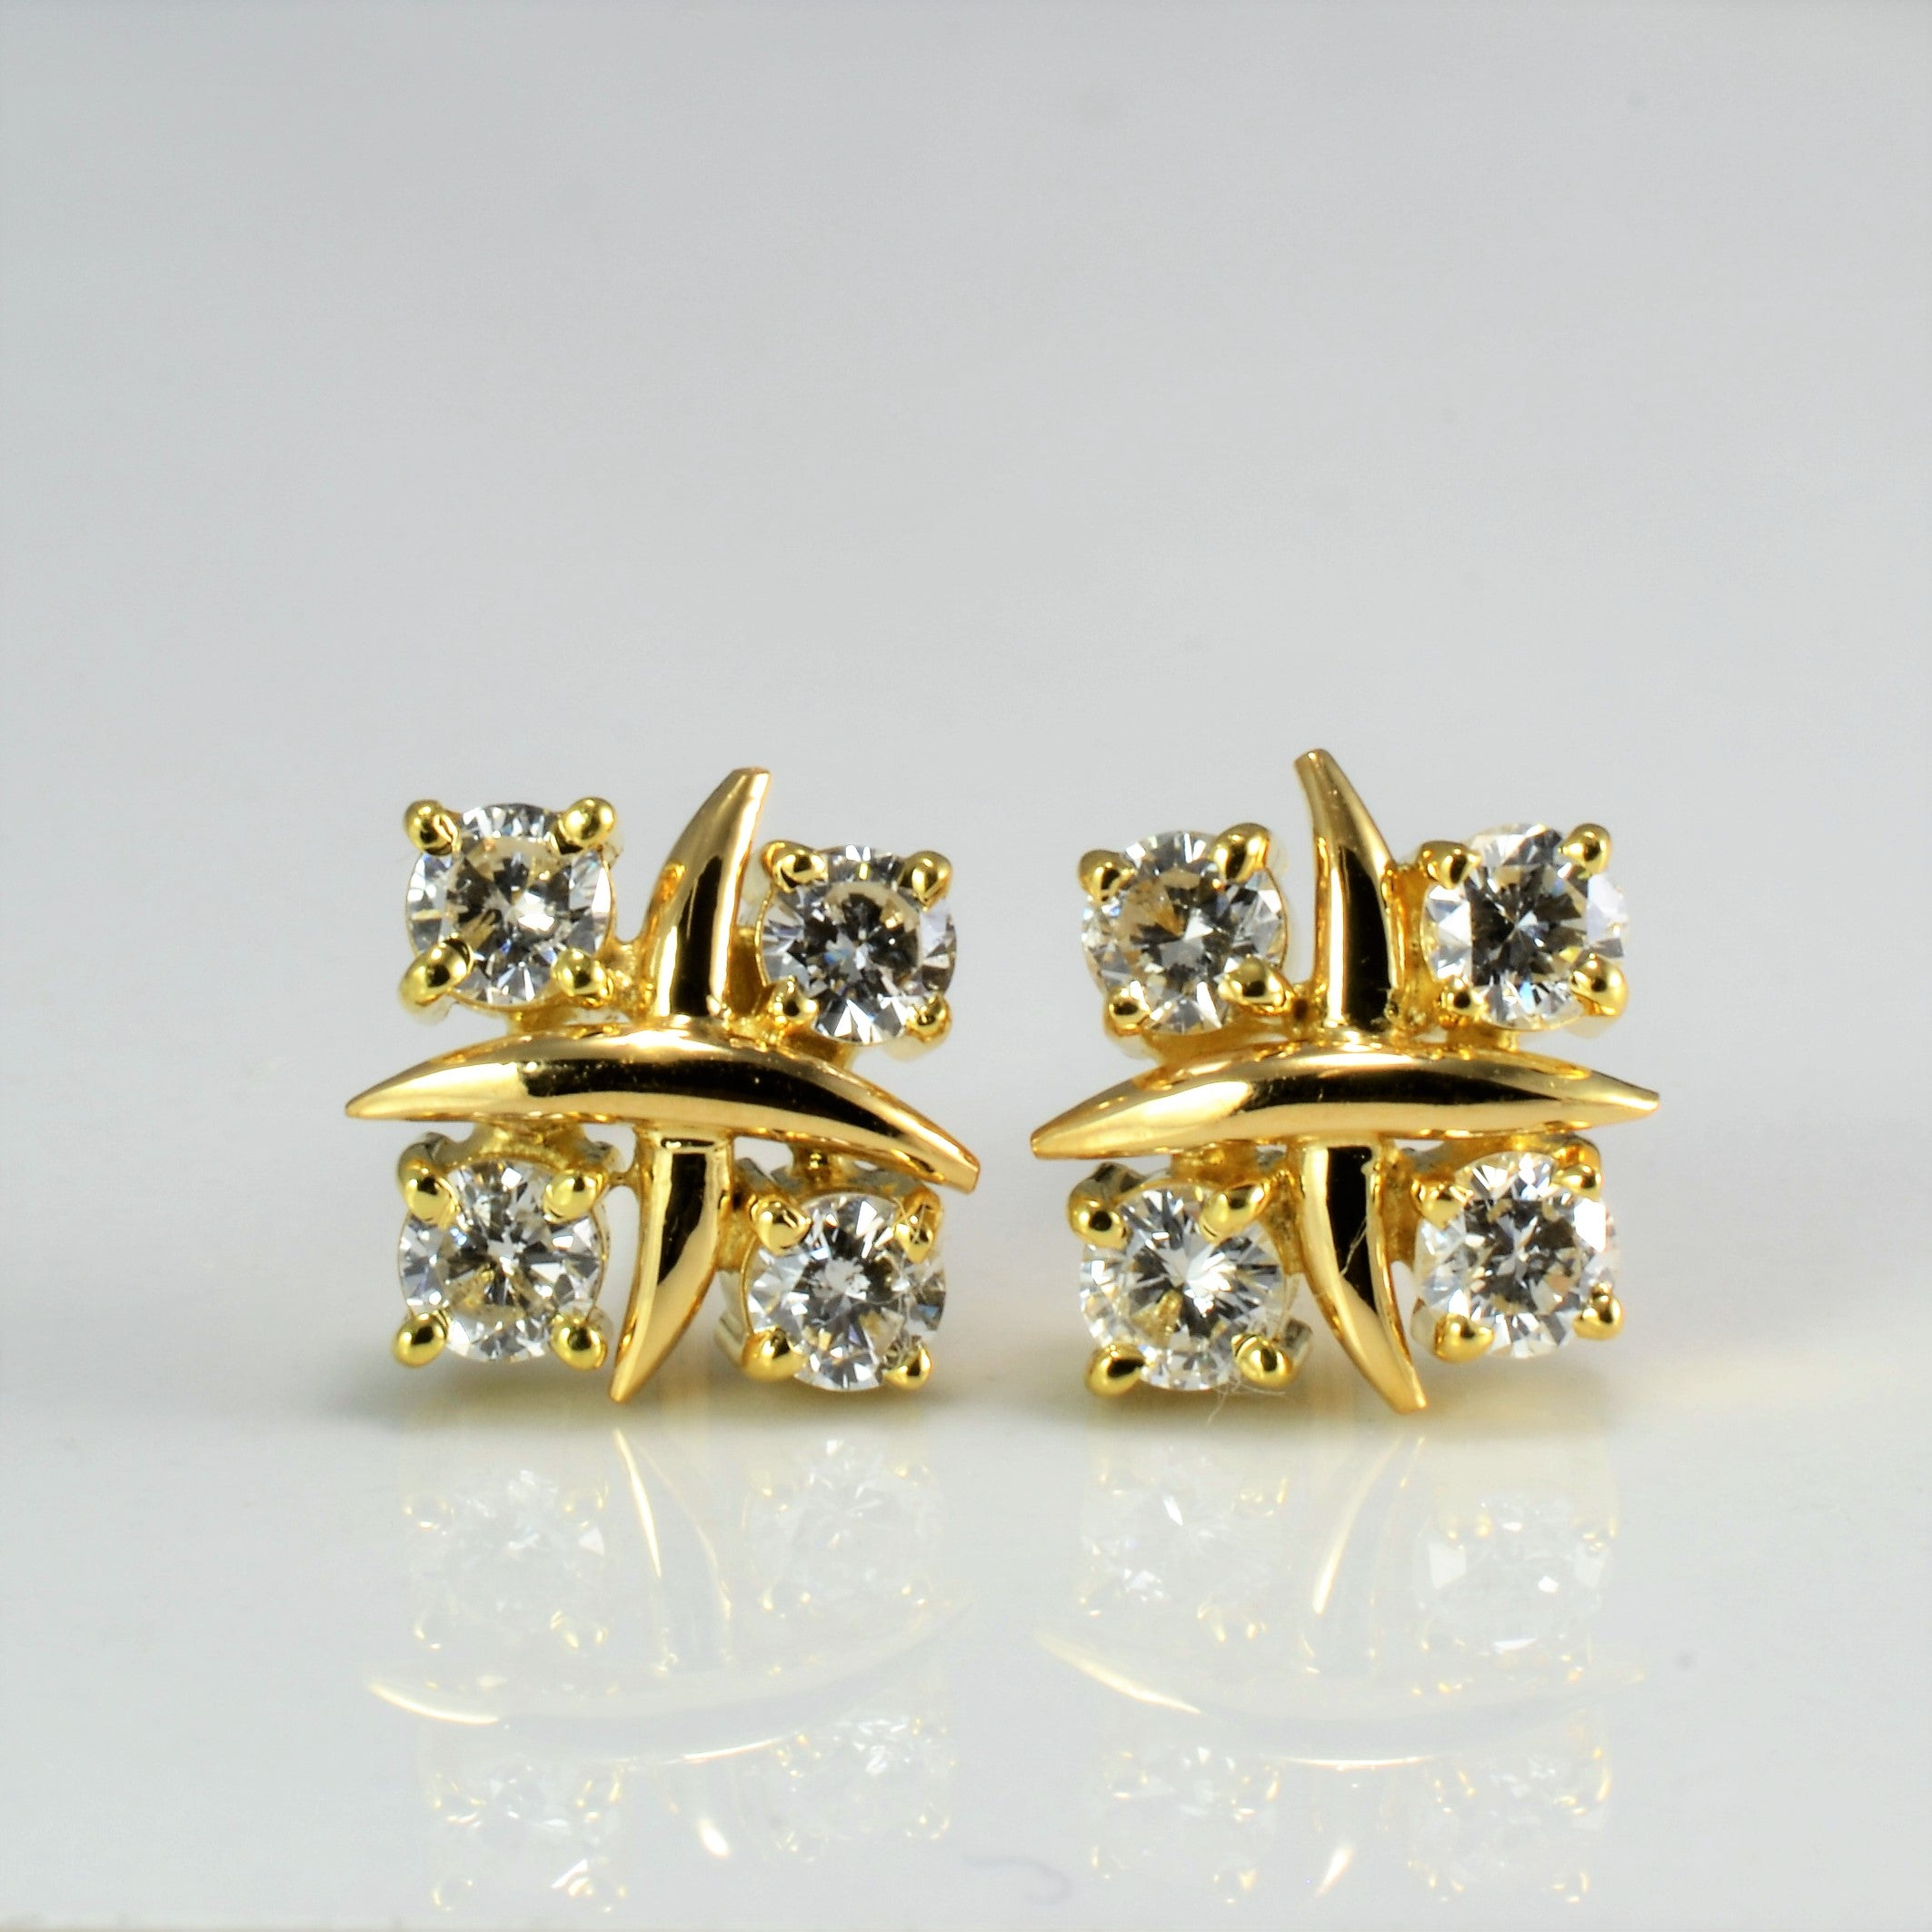 Four Stone Diamond Stud Earrings | 0.48 ctw |